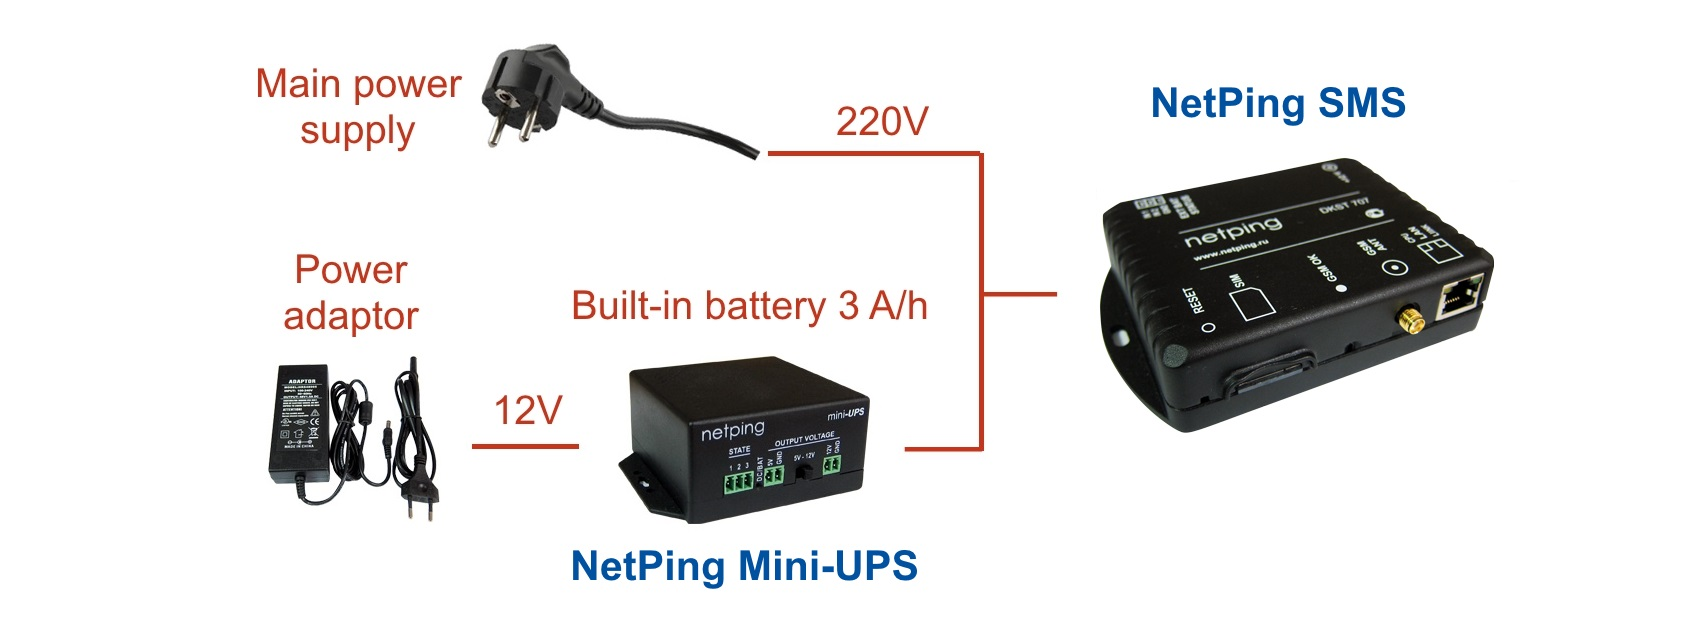 Uninterruptible power supply of a device with NetPing Mini-UPS